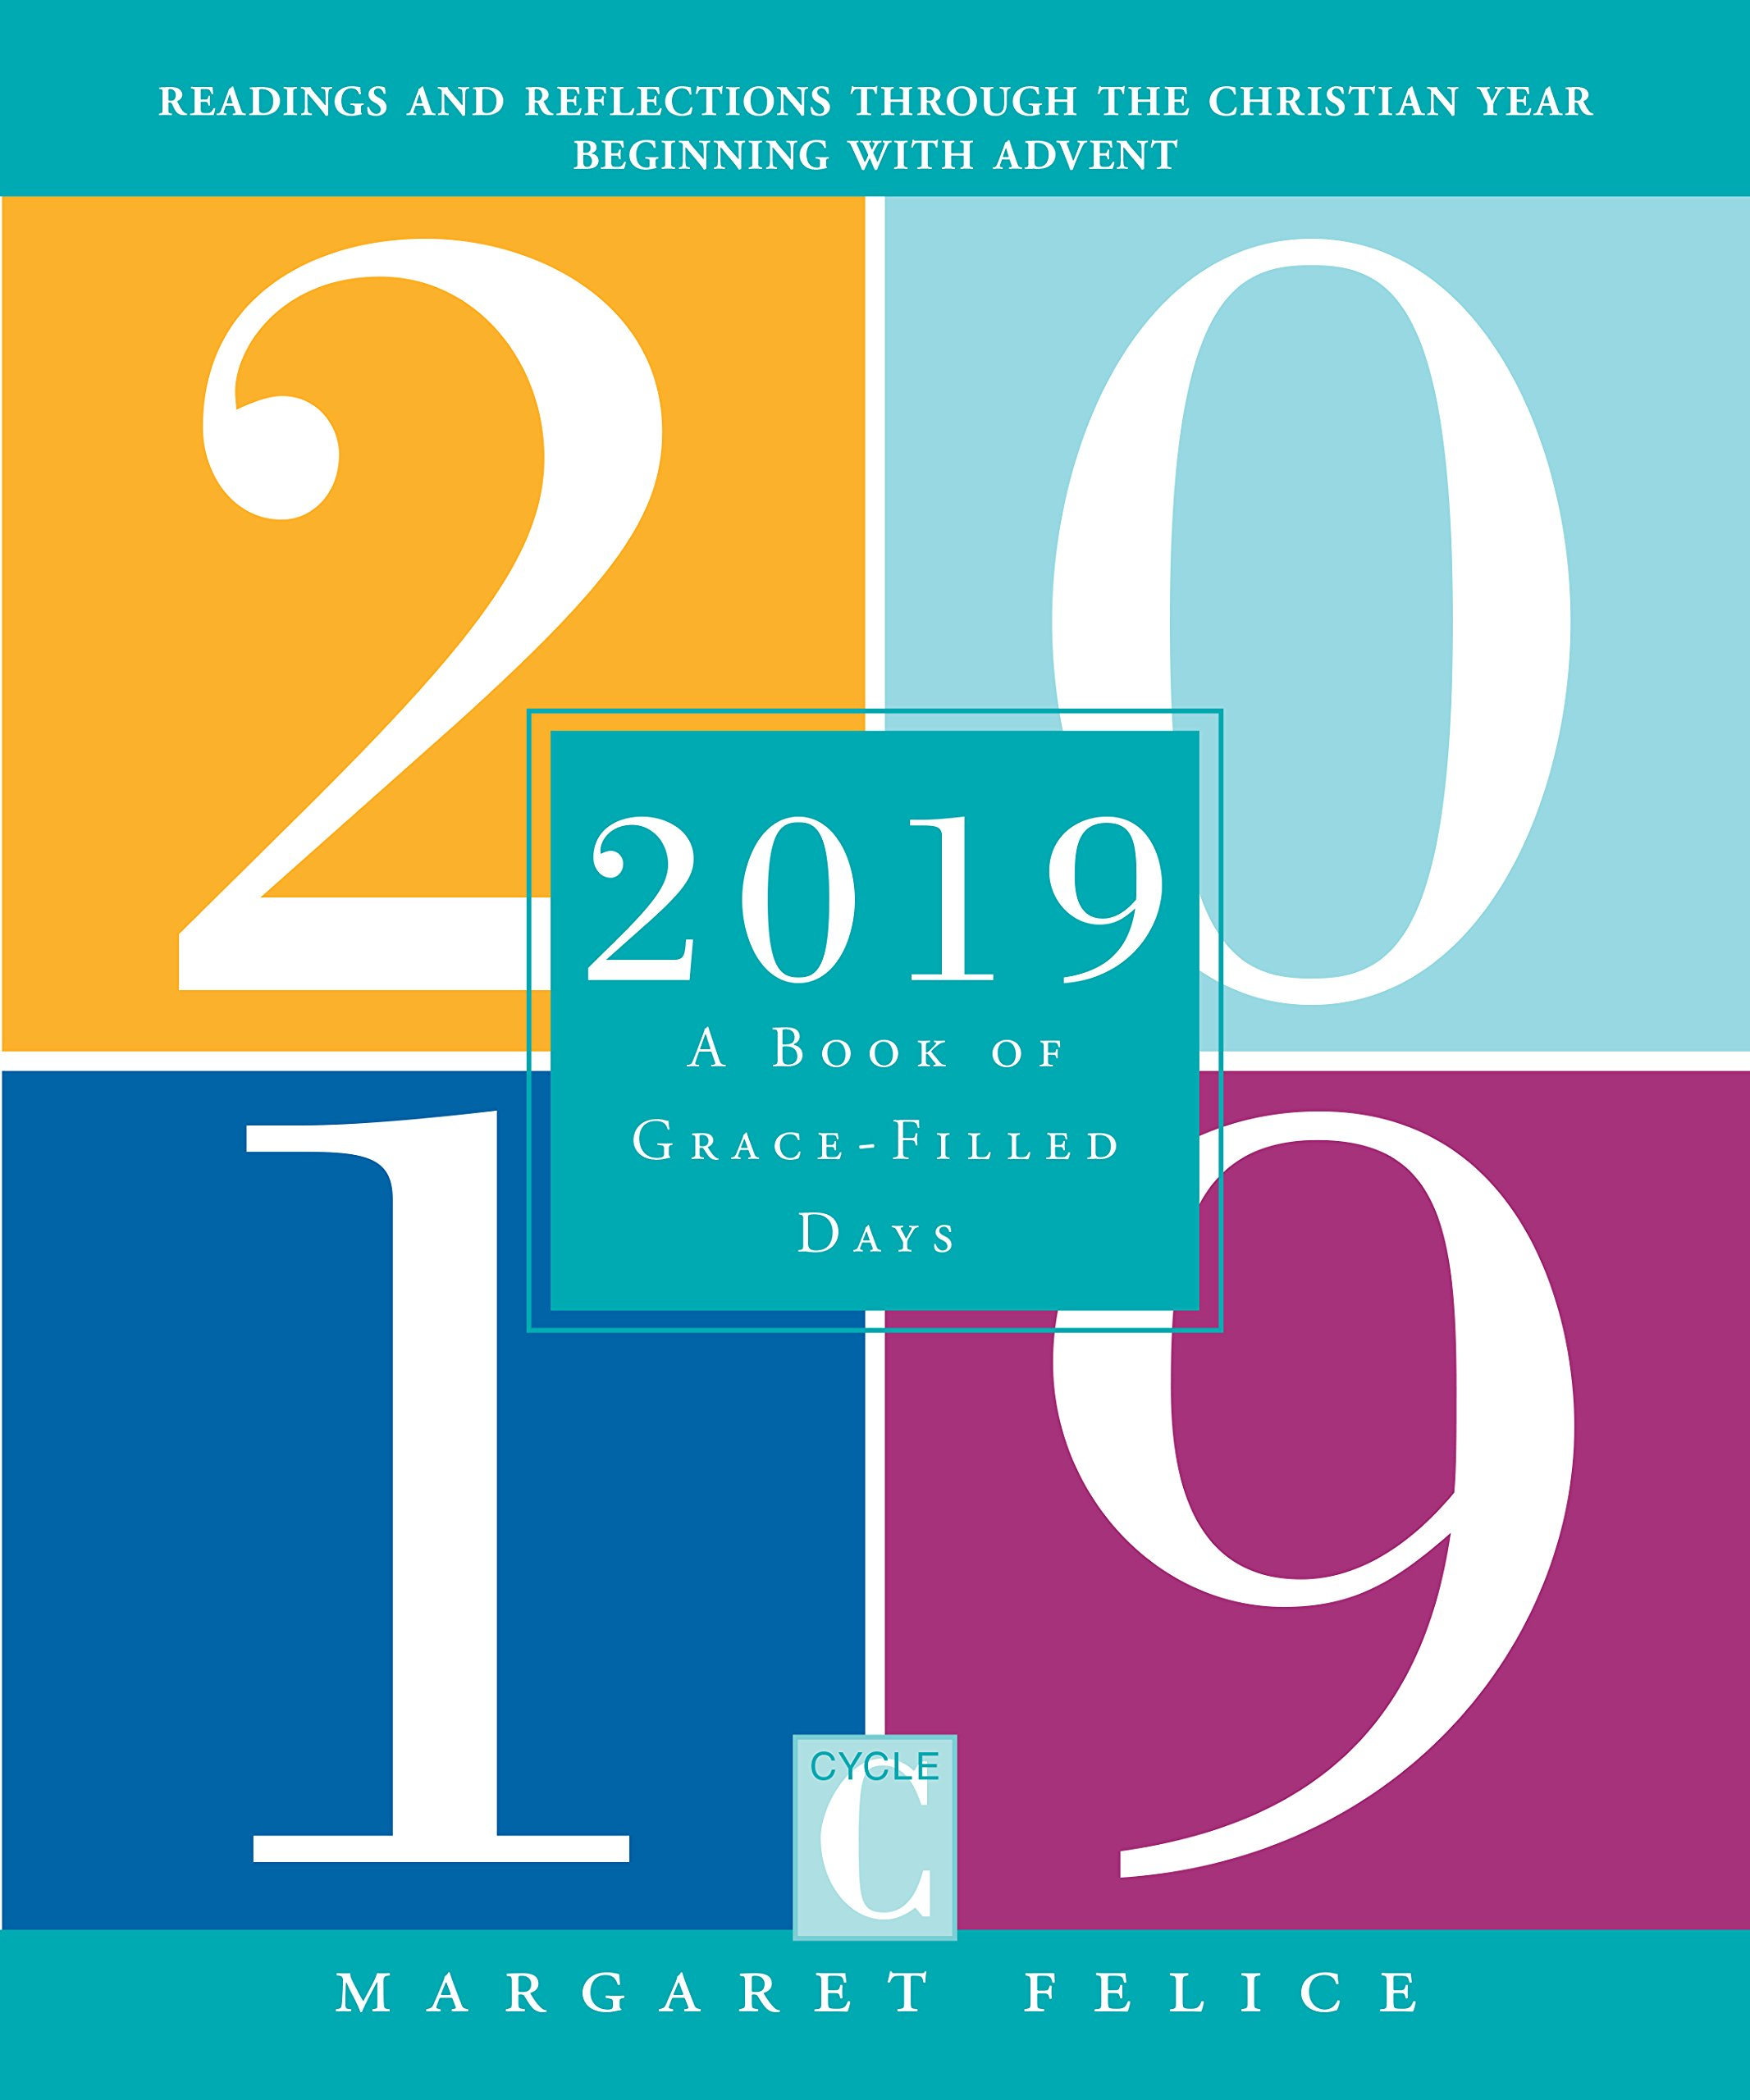 2019: A Book of Grace-Filled Days: Margaret Felice: 9780829446081:  Amazon.com: Books